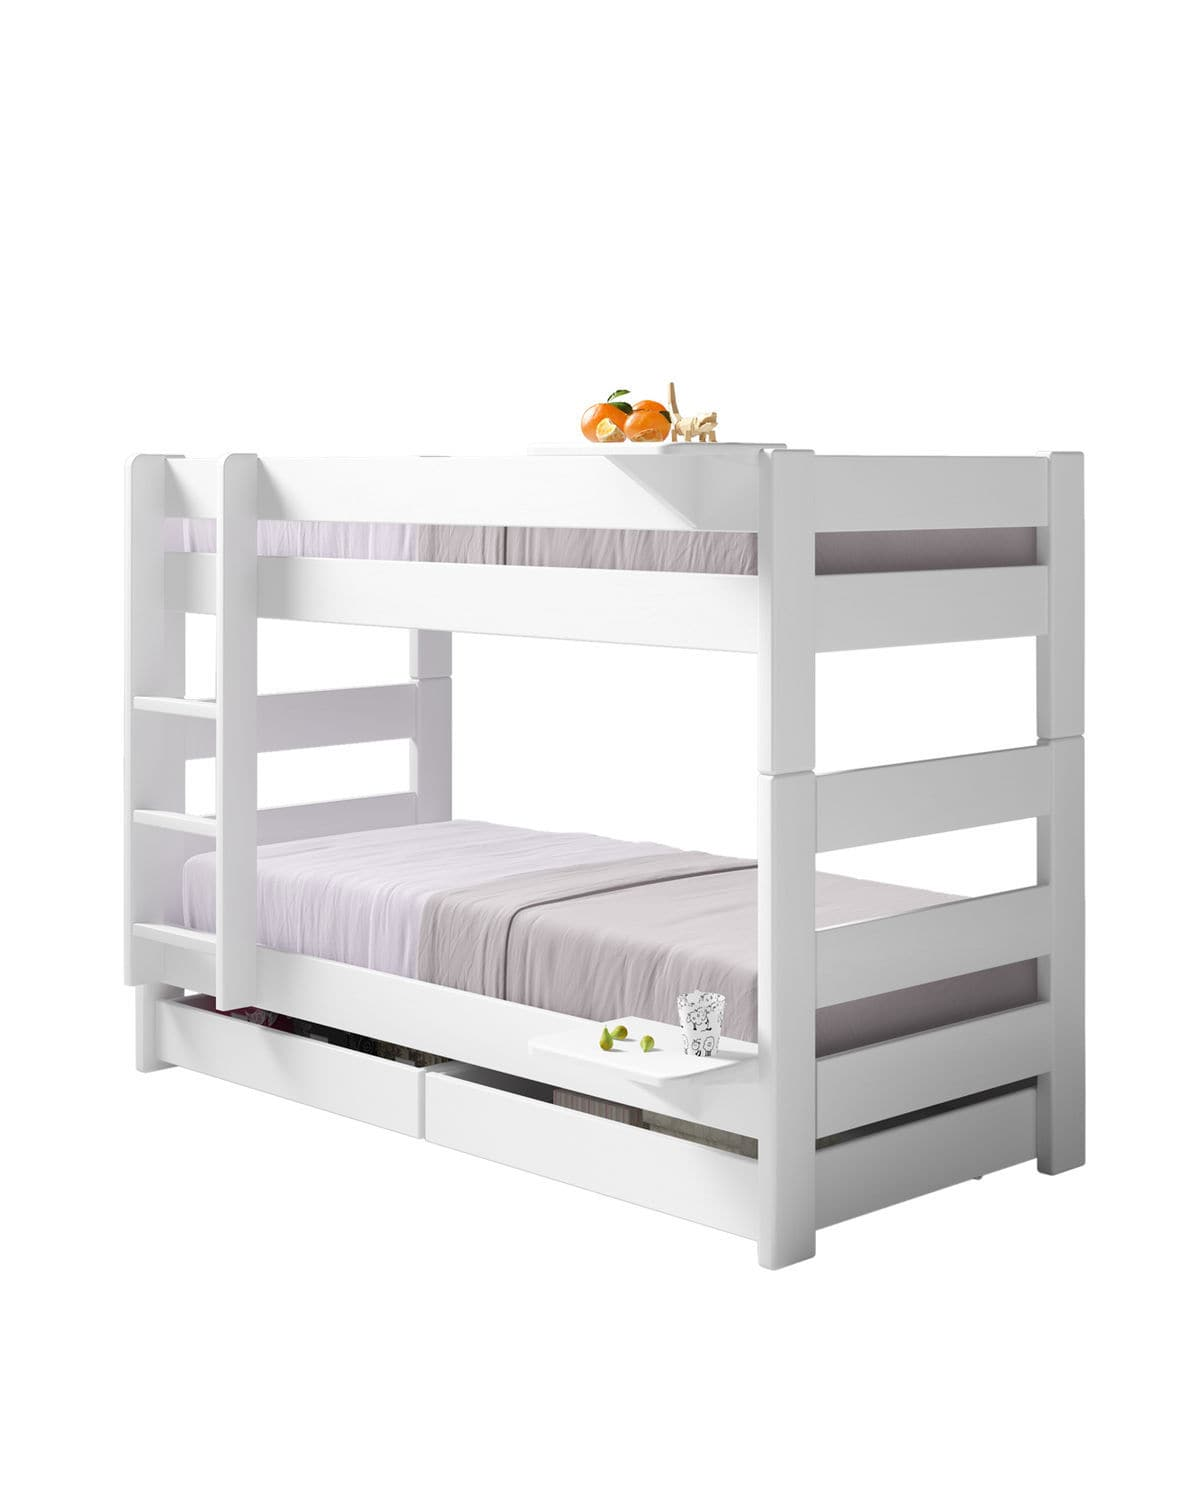 Ikea Letti Bambini A Castello.Bunk Bed Single Contemporary Child S Dominique 149 90 D